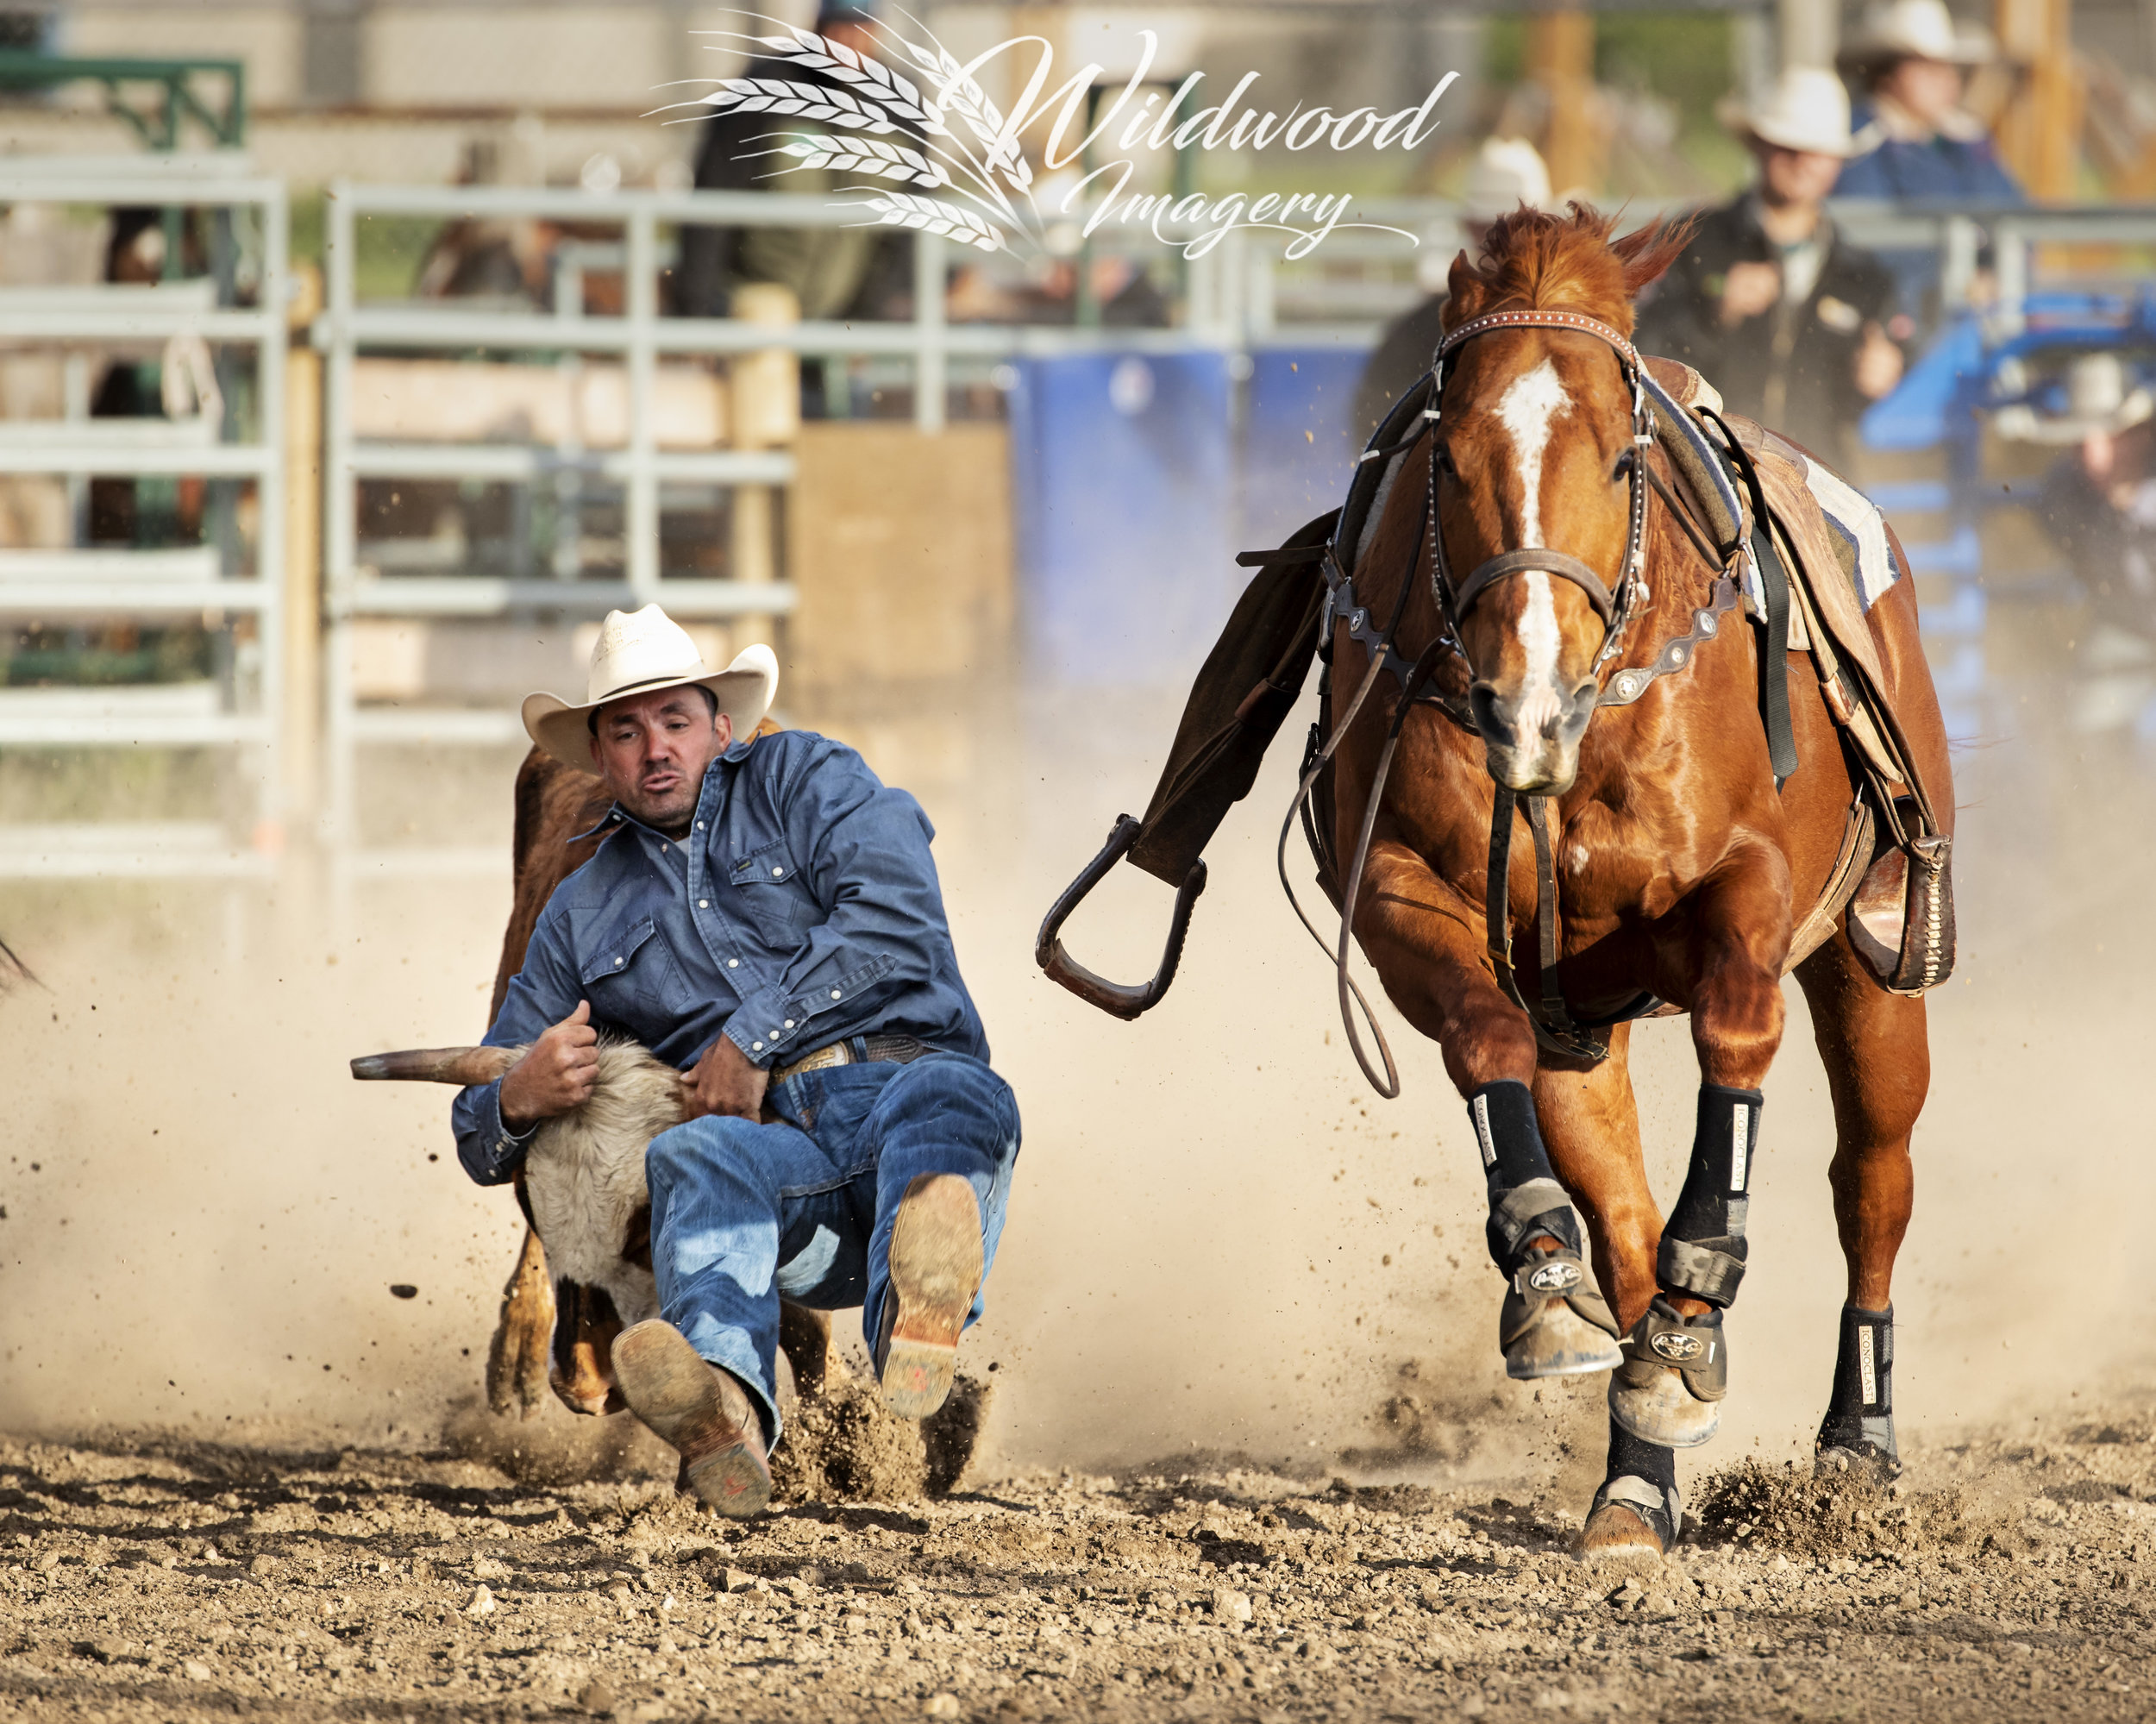 Trace Nicholson competing at the Slack - Couttsgrass Rodeo in Coutts, Alberta, Canada on June 15, 2018. Photo taken by Wildwood Imagery / Chantelle Bowman.